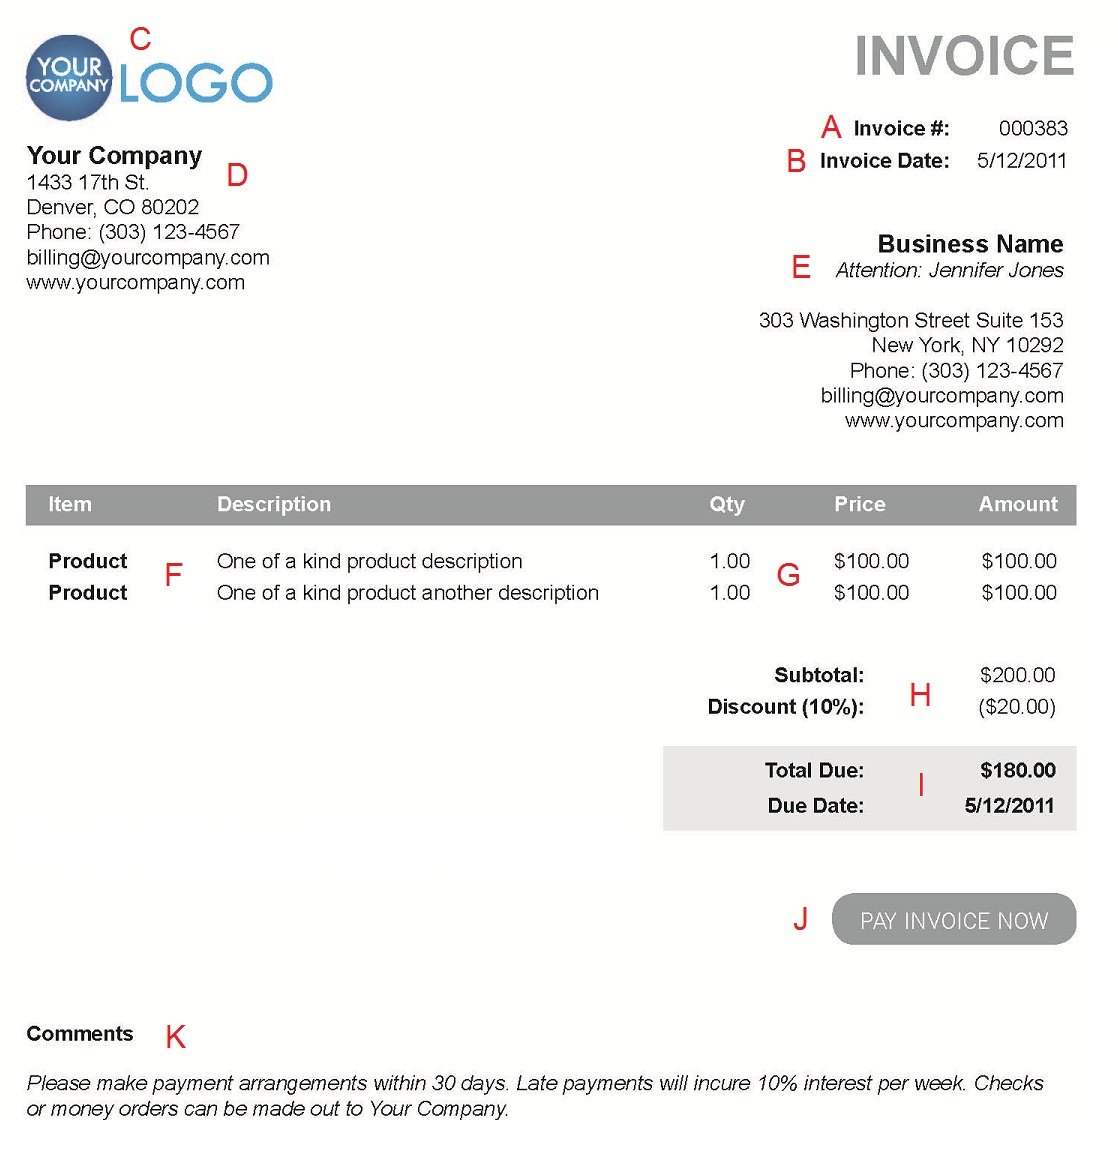 Soulfulpowerus  Pleasing The  Different Sections Of An Electronic Payment Invoice With Fascinating A  With Awesome How To Make A Donation Receipt Also Residential Lease Rental Agreement And Deposit Receipt In Addition World Vision Donation Receipt And Receipt Notice As Well As Receiving Receipt Sample Additionally Trust Receipt Facility From Paysimplecom With Soulfulpowerus  Fascinating The  Different Sections Of An Electronic Payment Invoice With Awesome A  And Pleasing How To Make A Donation Receipt Also Residential Lease Rental Agreement And Deposit Receipt In Addition World Vision Donation Receipt From Paysimplecom